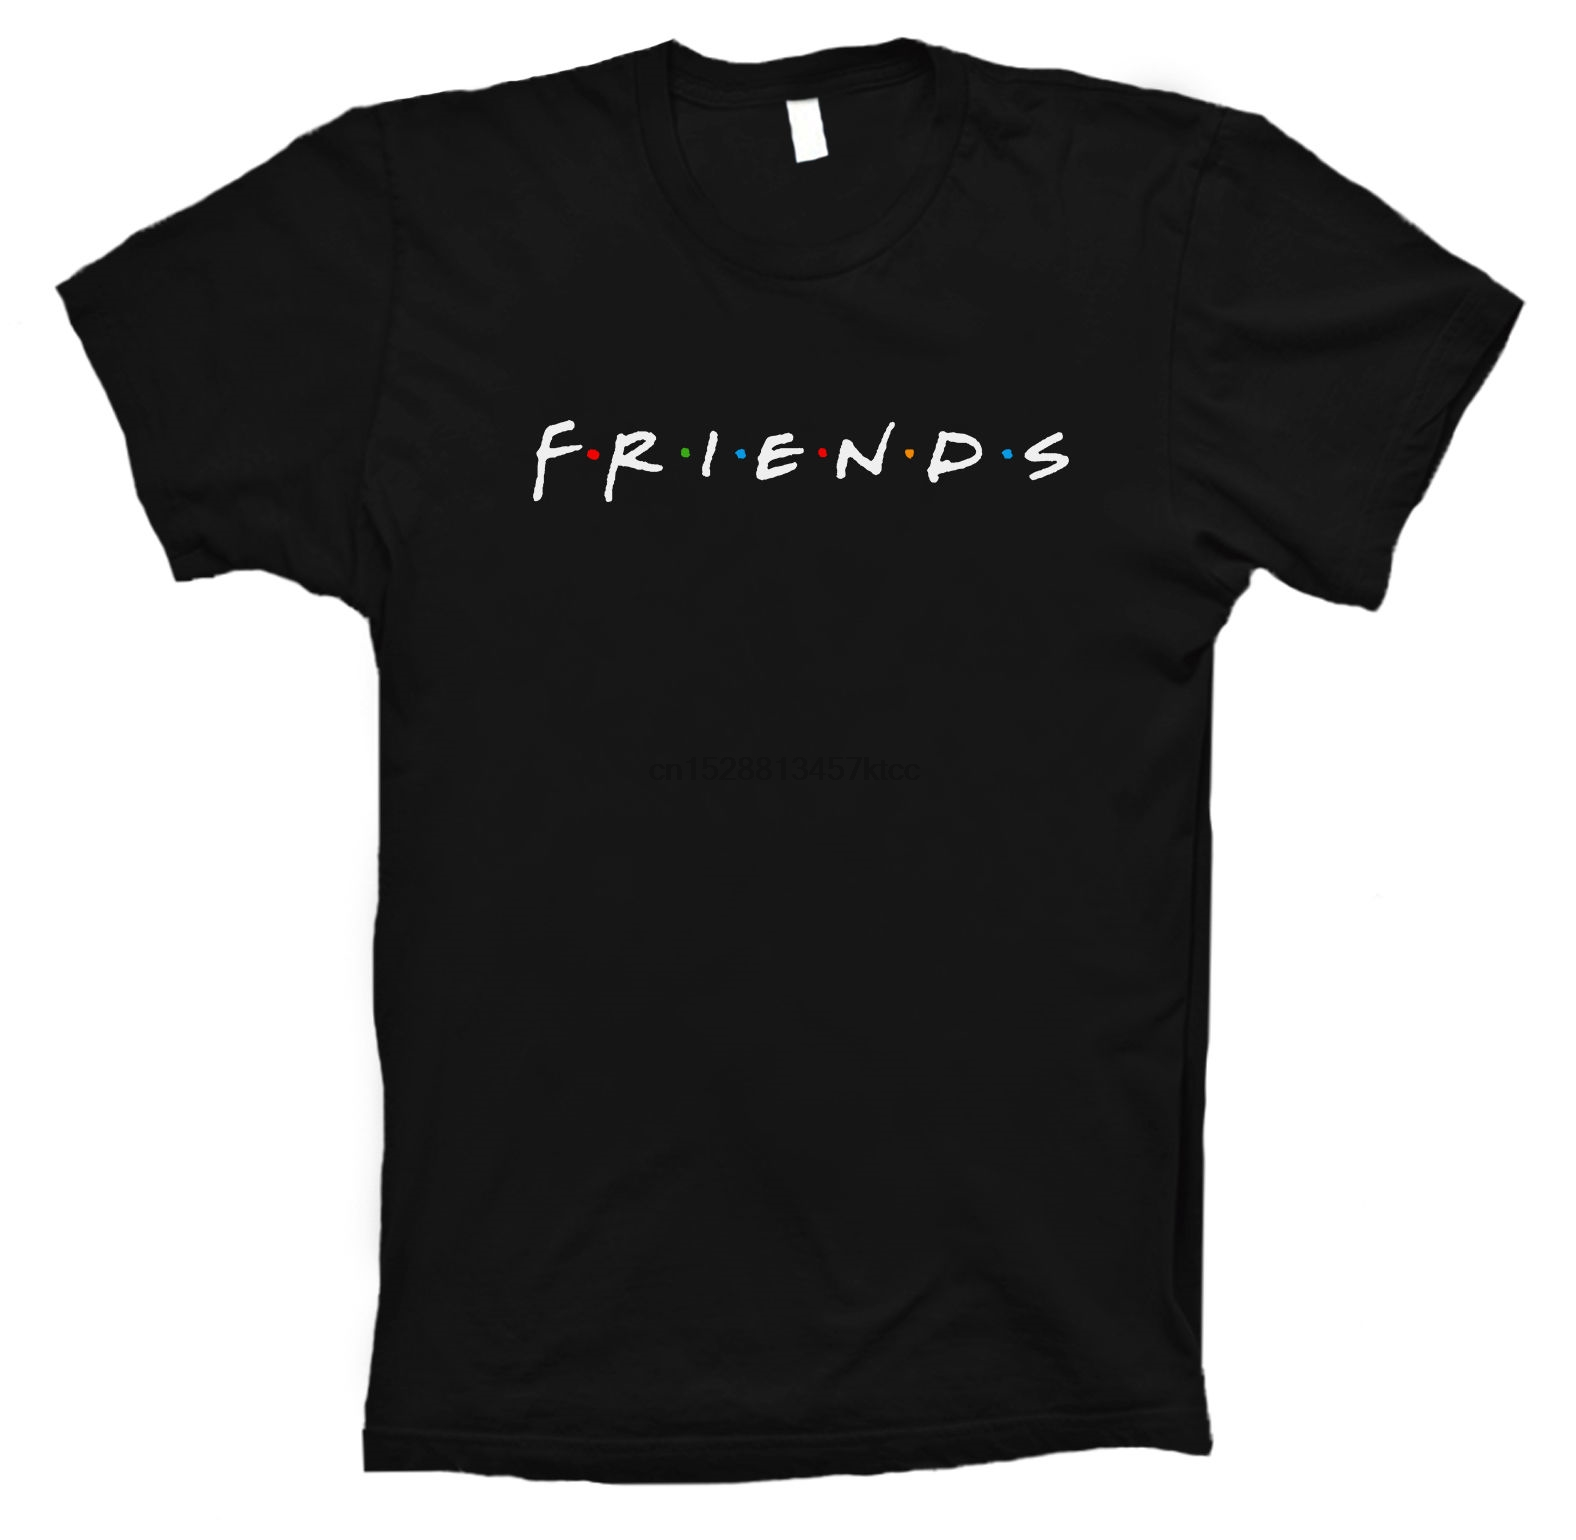 Friends T Shirt Inspired 90S Tv Show Sitcom New Sizes For Men 100% Cotton Print Mens Summer O Neck New 2019 Fashion Hot T Shirt image